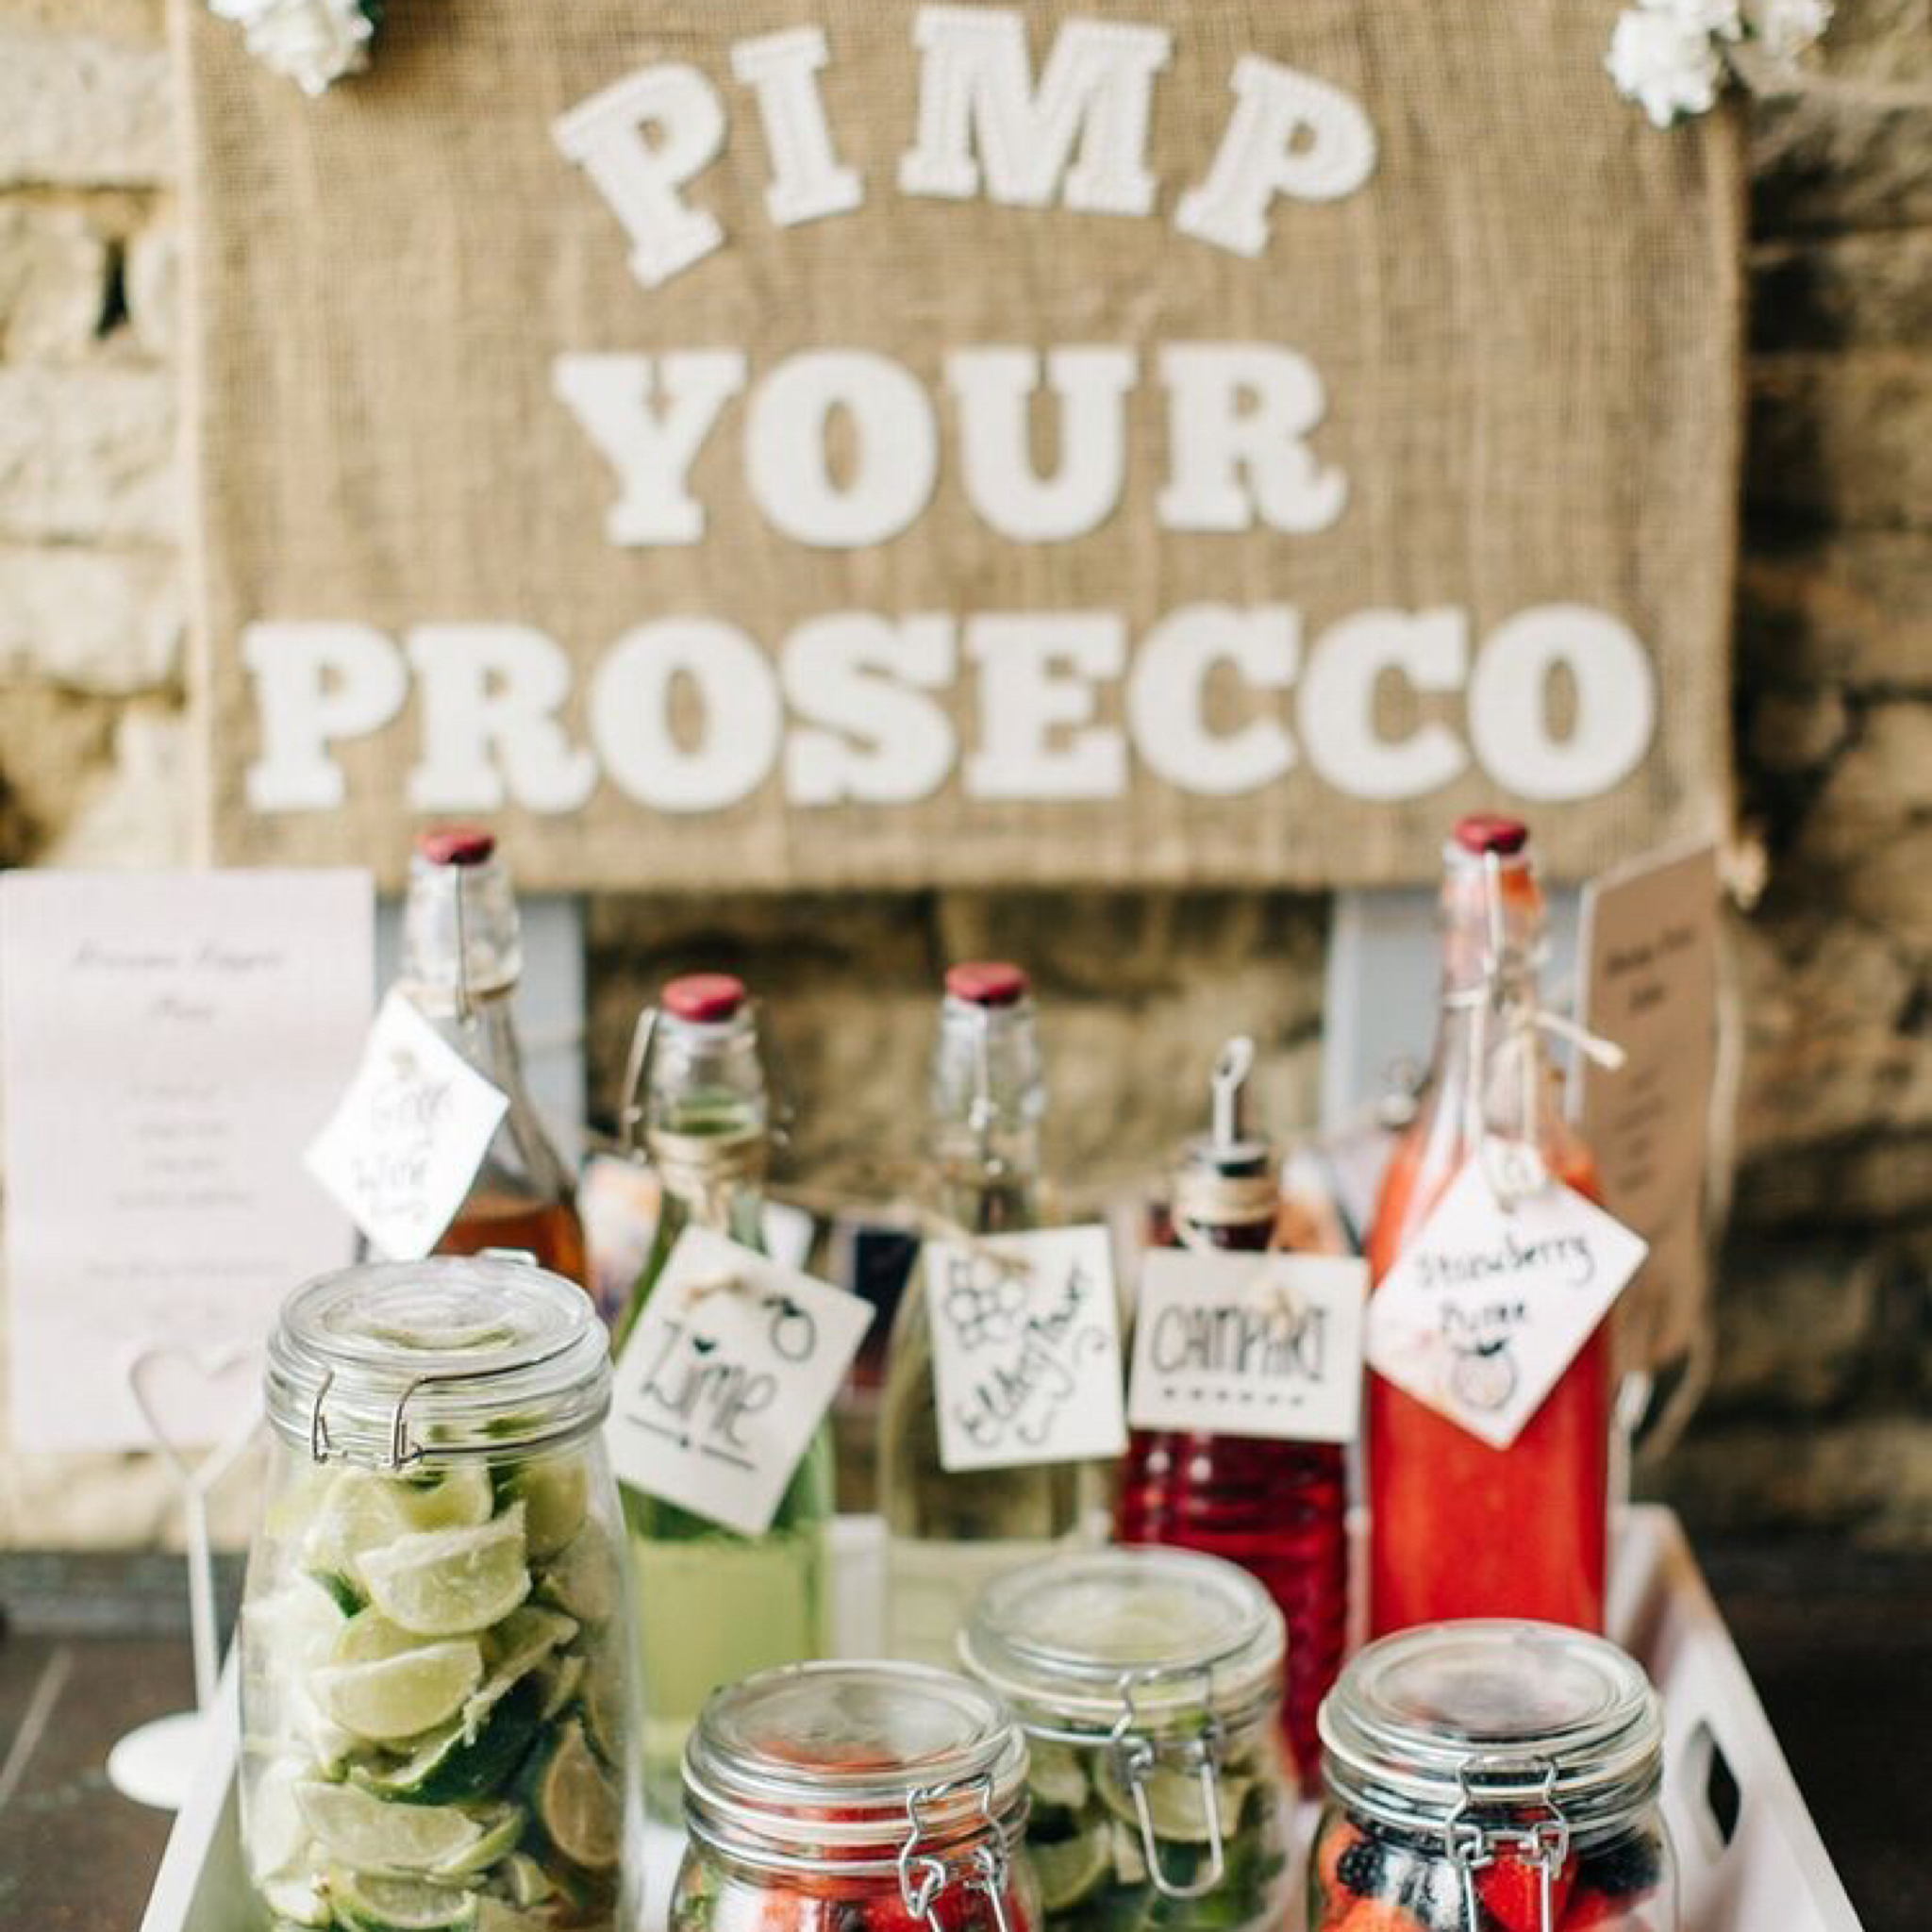 Summer Wedding Ideas Pinterest: Summer Wedding Ideas